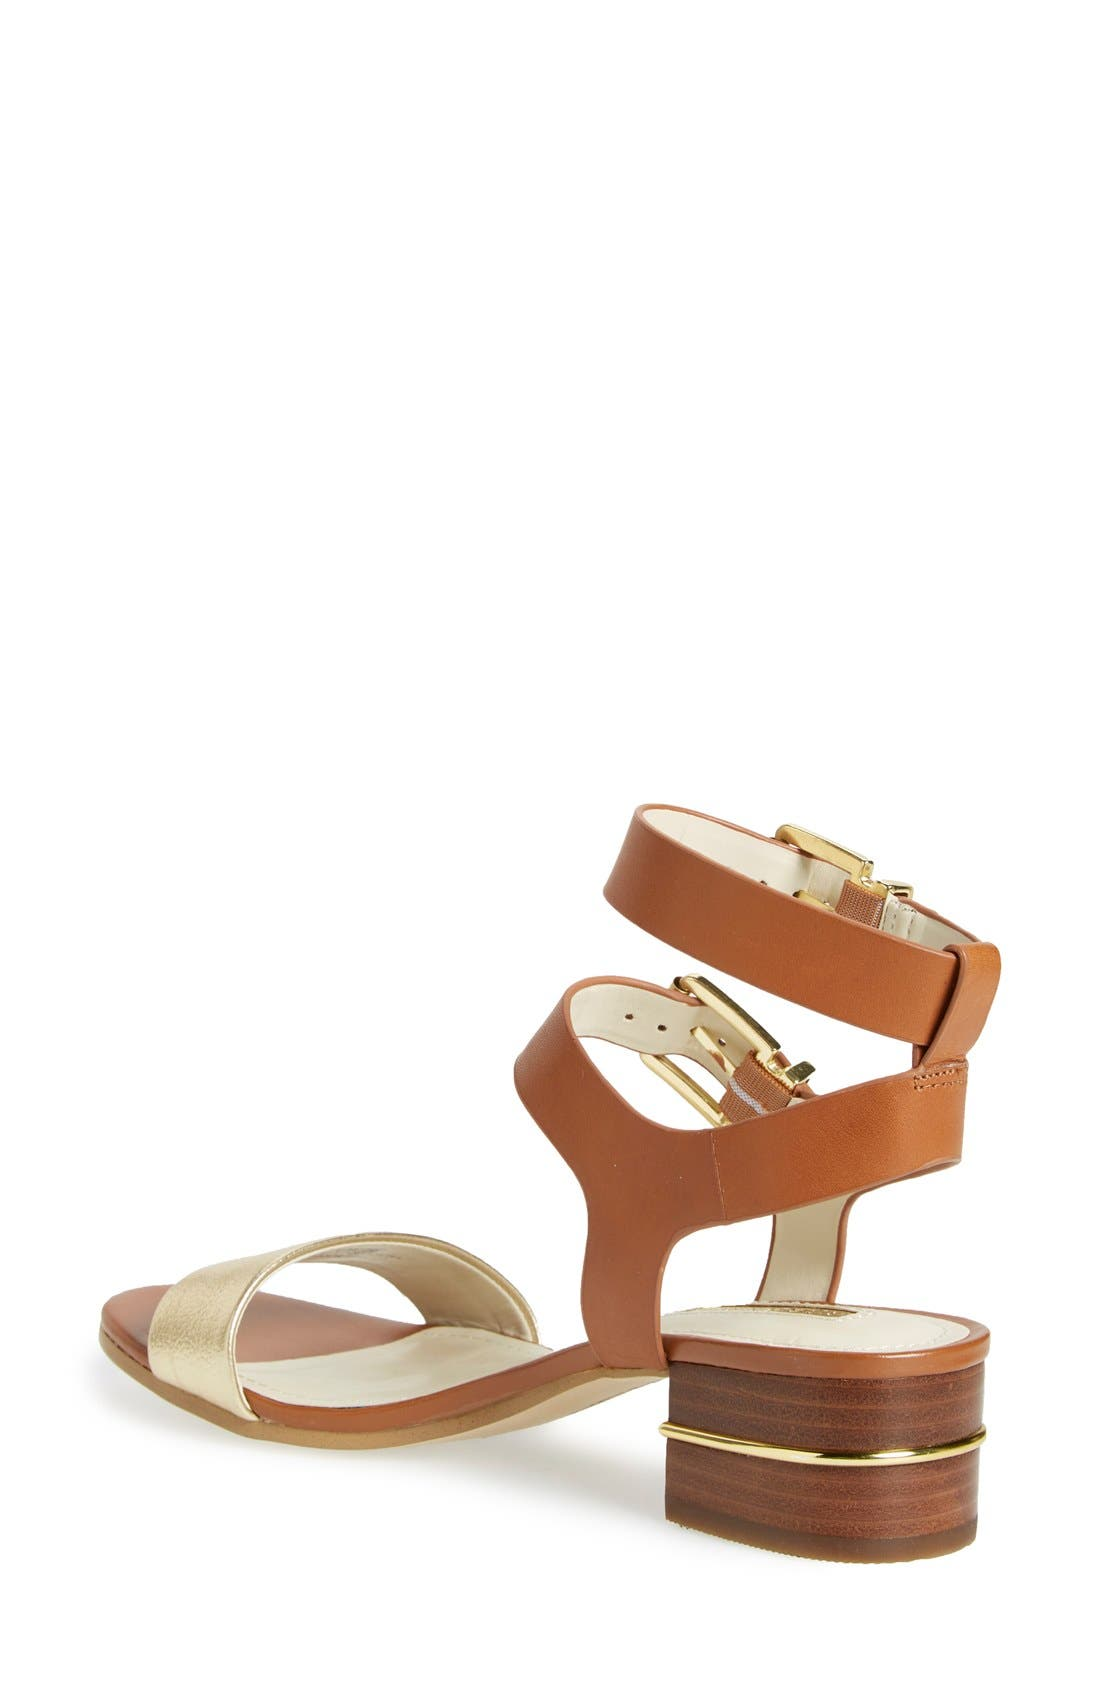 Alternate Image 2  - BCBGeneration 'Roger' Block Heel Sandal (Women)